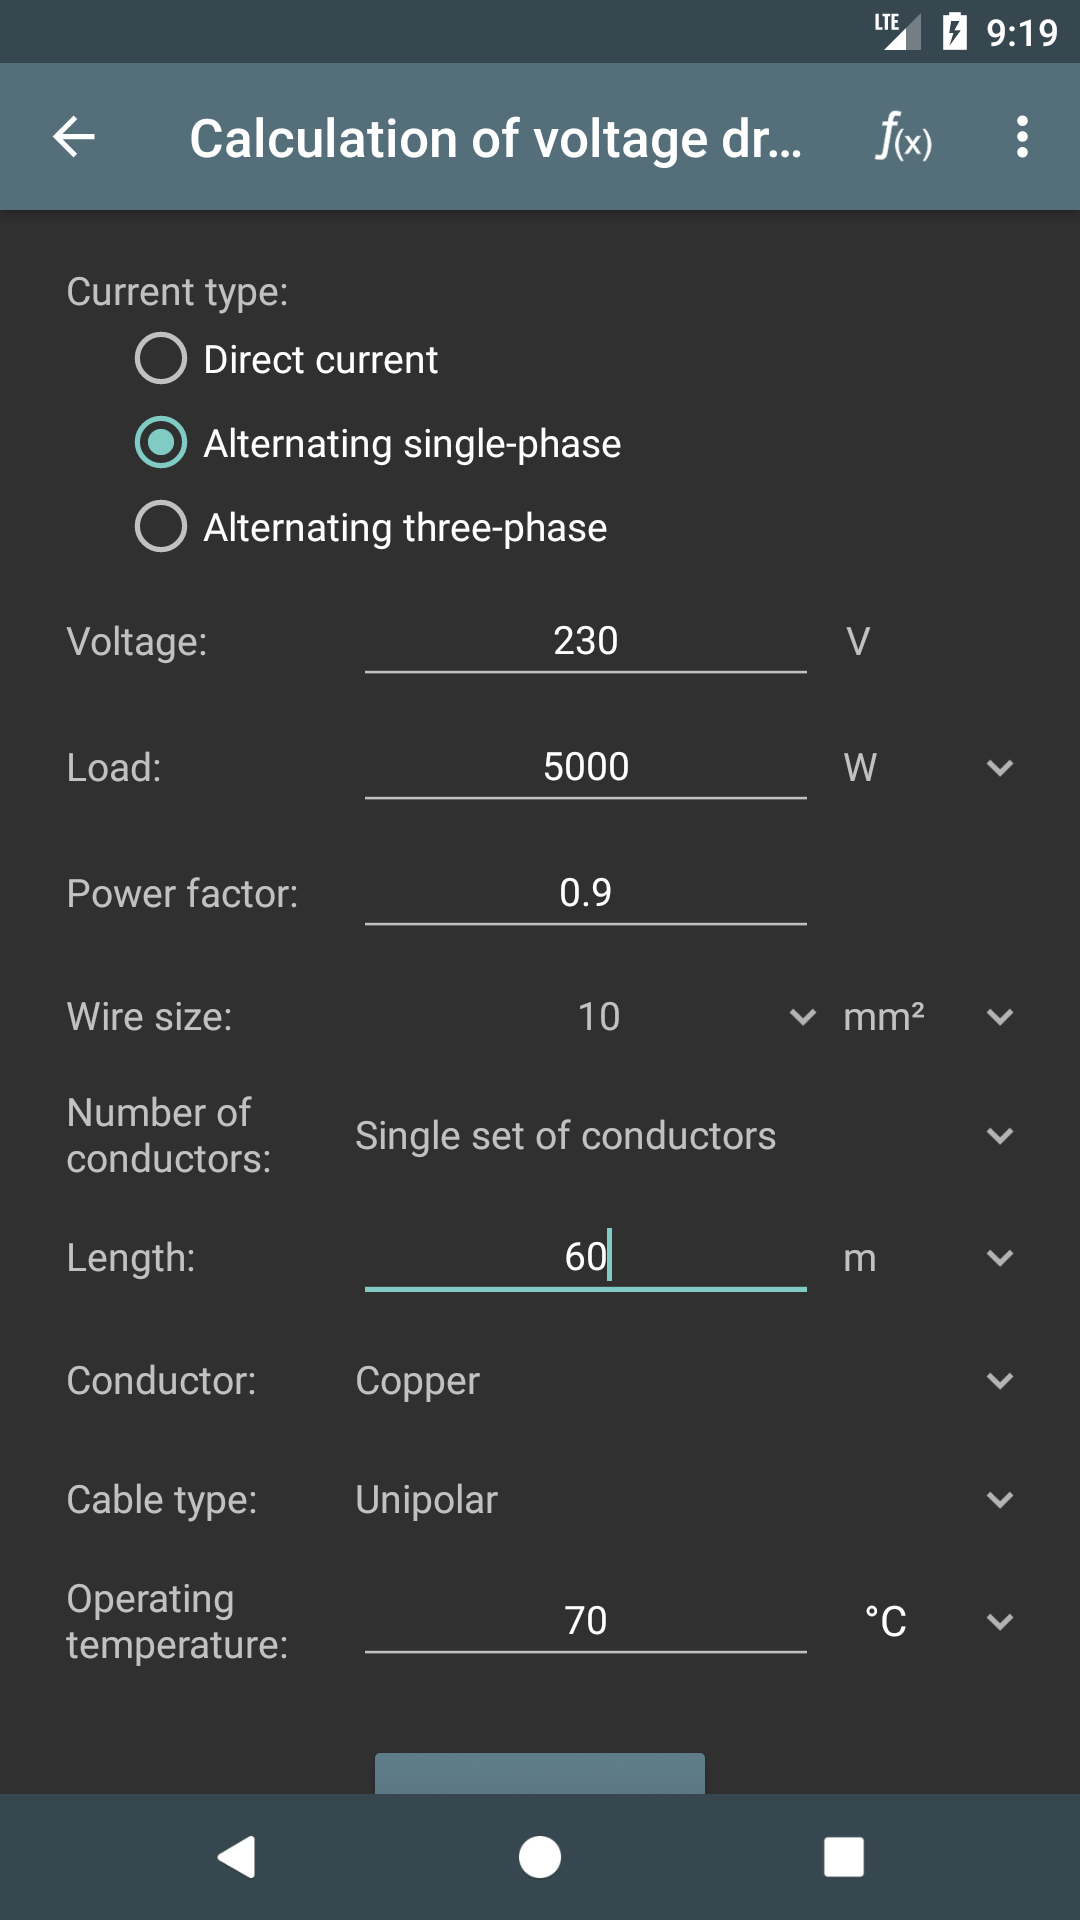 Amazon.com: Electrical Calculations PRO Key: Appstore for Android